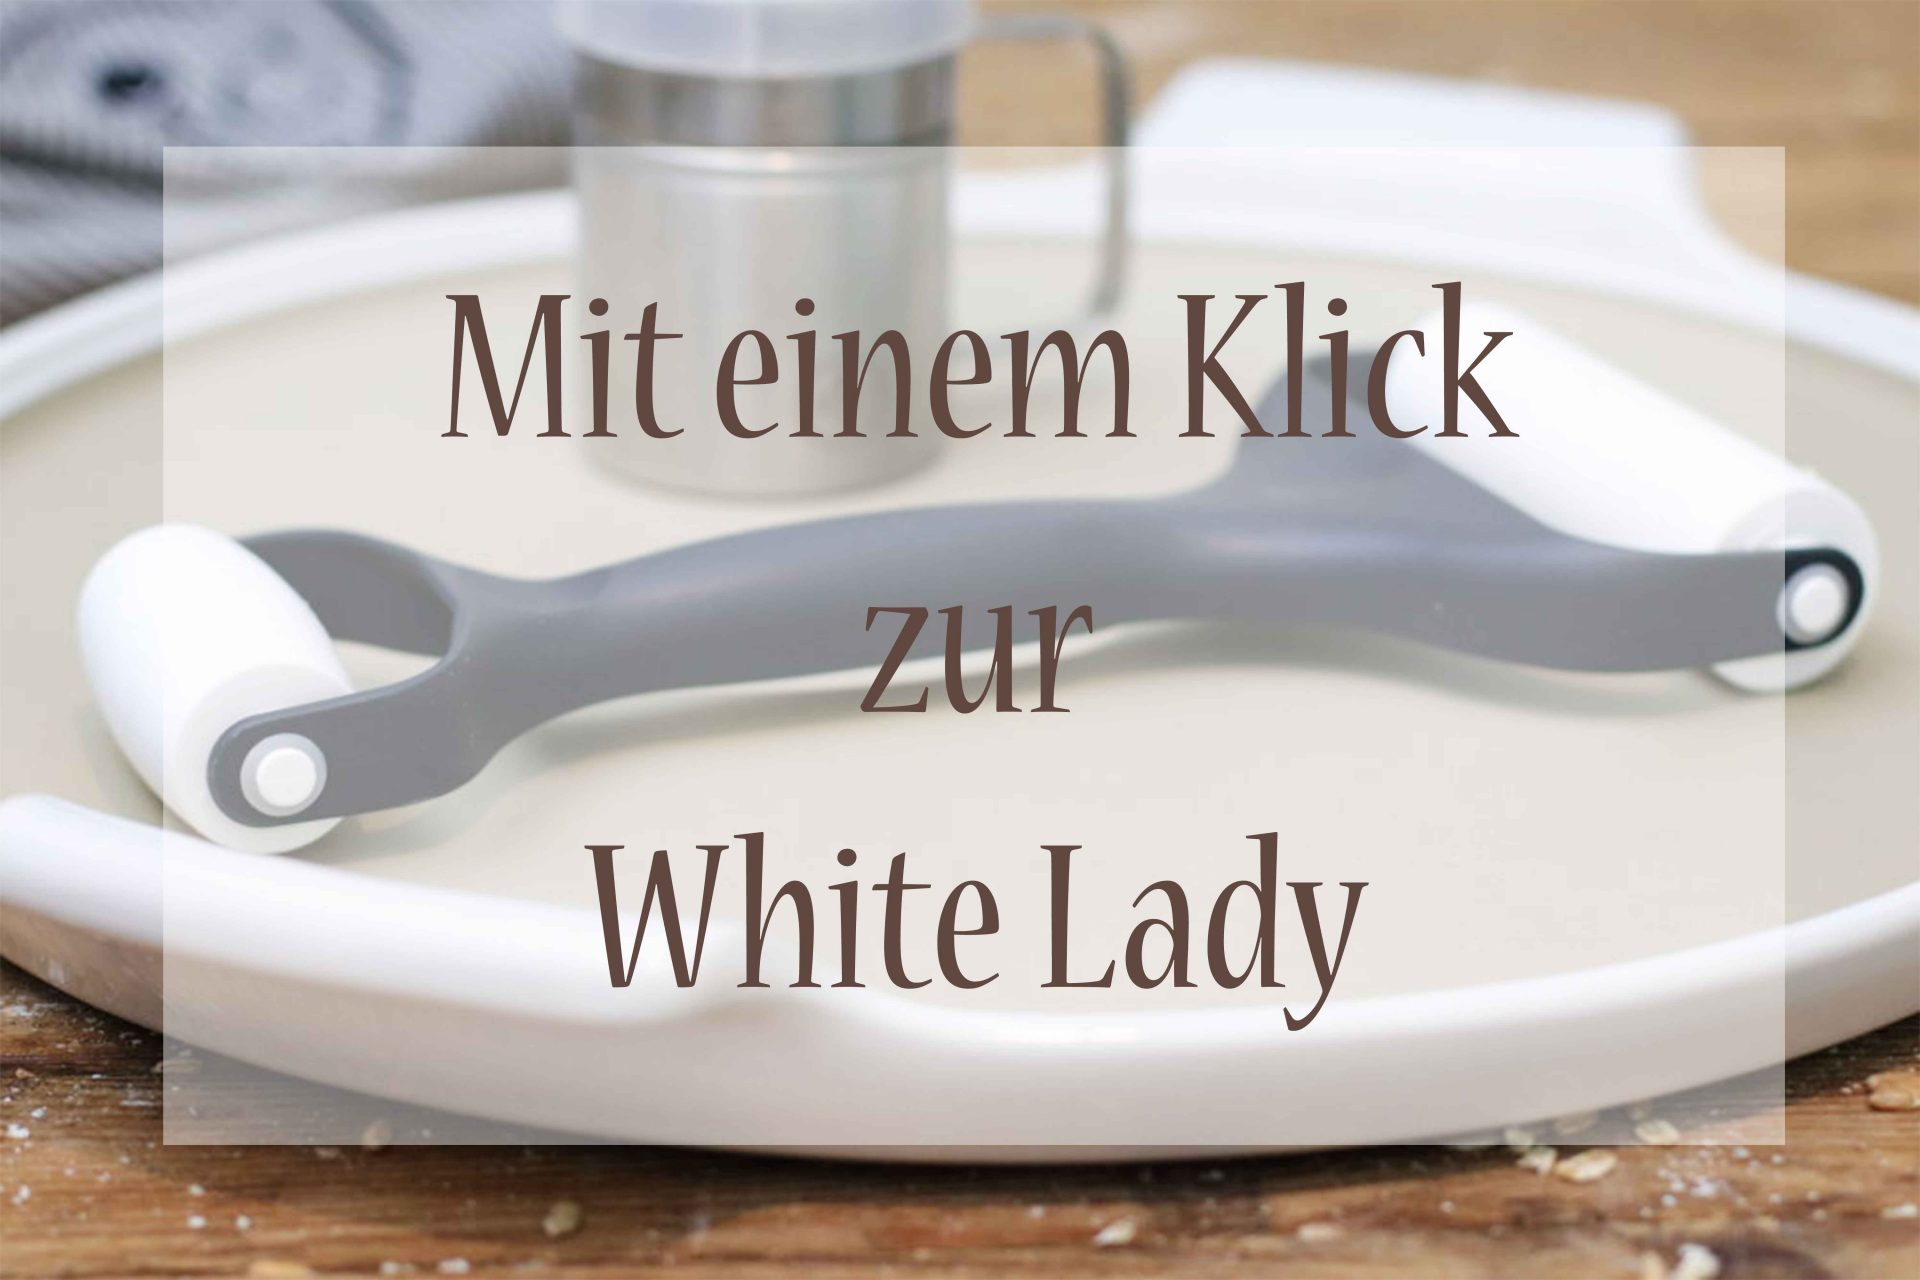 White Lady kaufen Foodrevers Pampered Chef Clean Eating